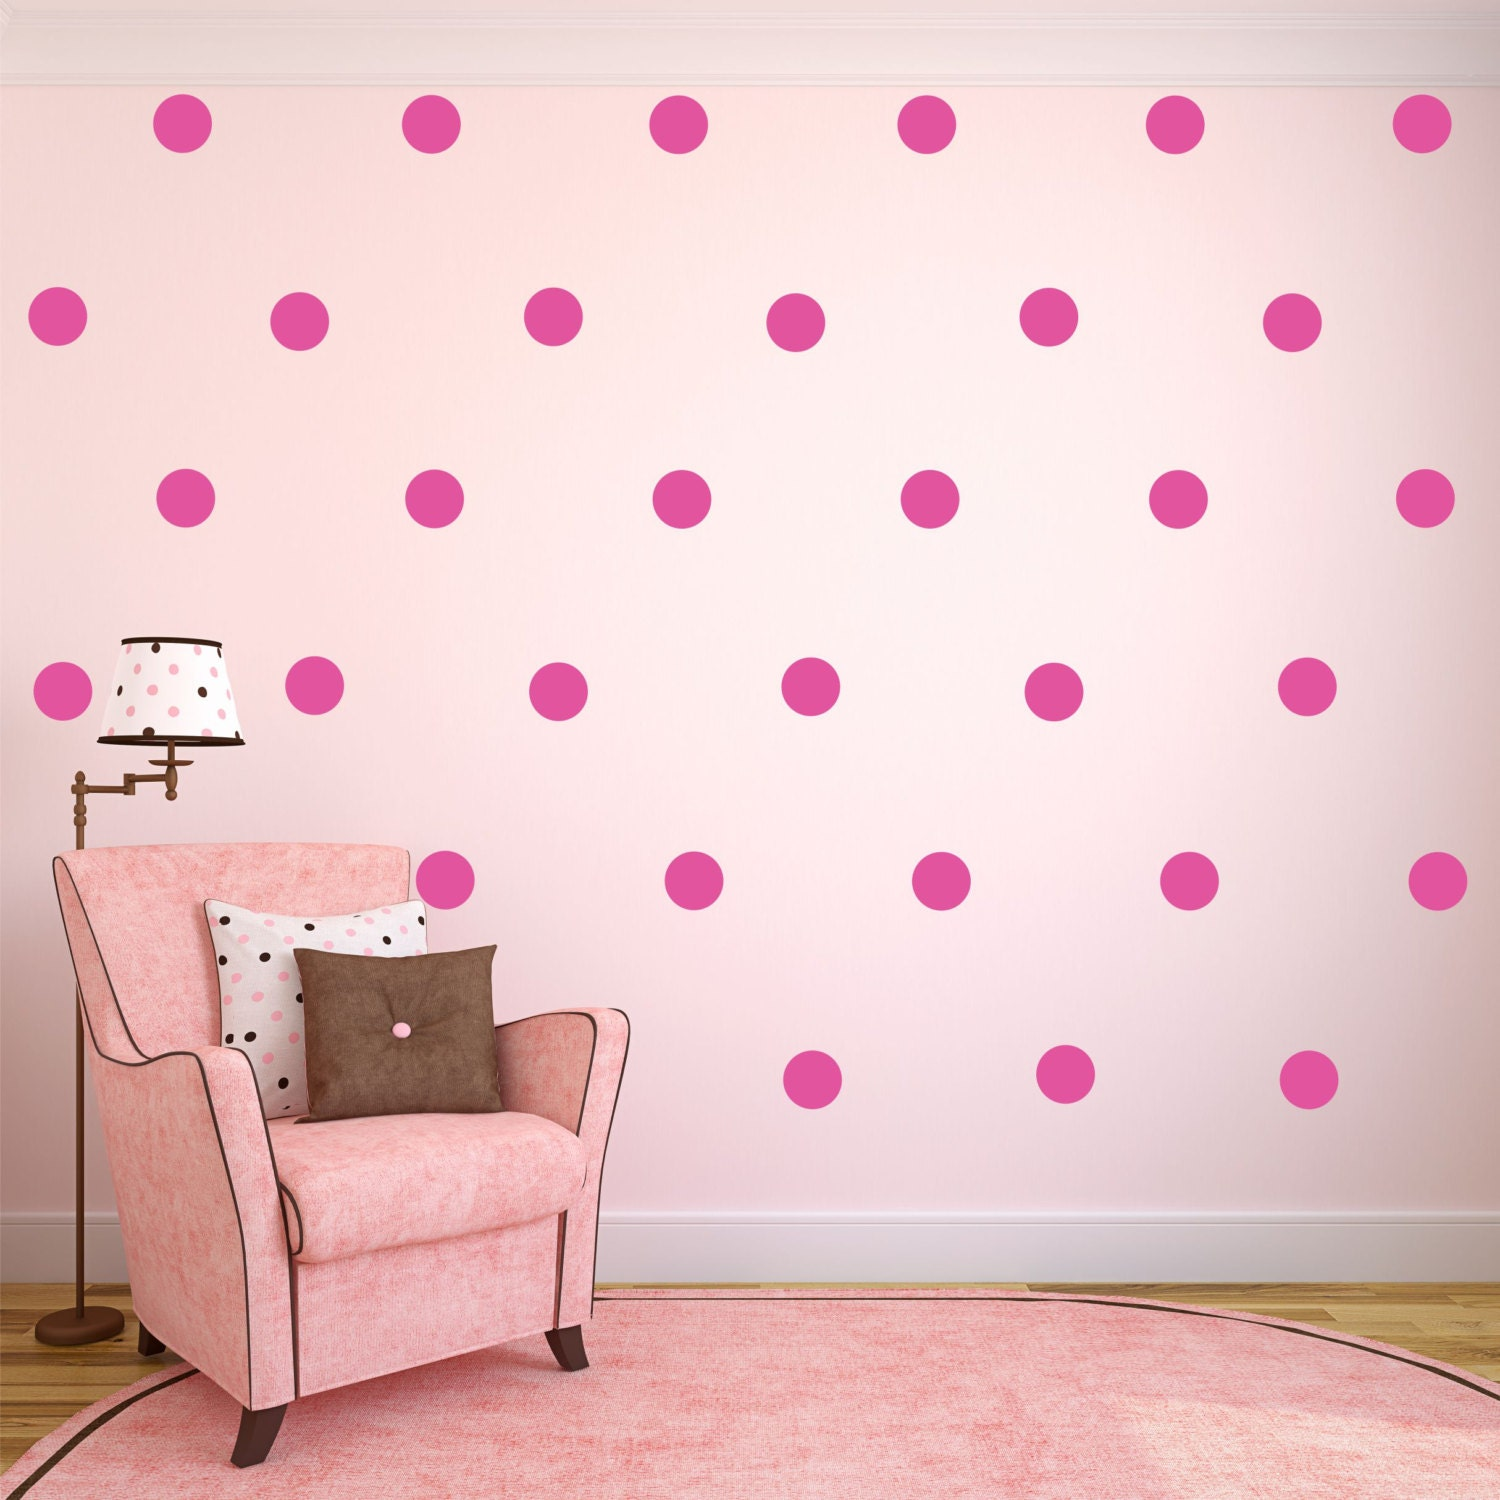 polka dot decals polka dot wall decor polka dot wall stickers. Black Bedroom Furniture Sets. Home Design Ideas